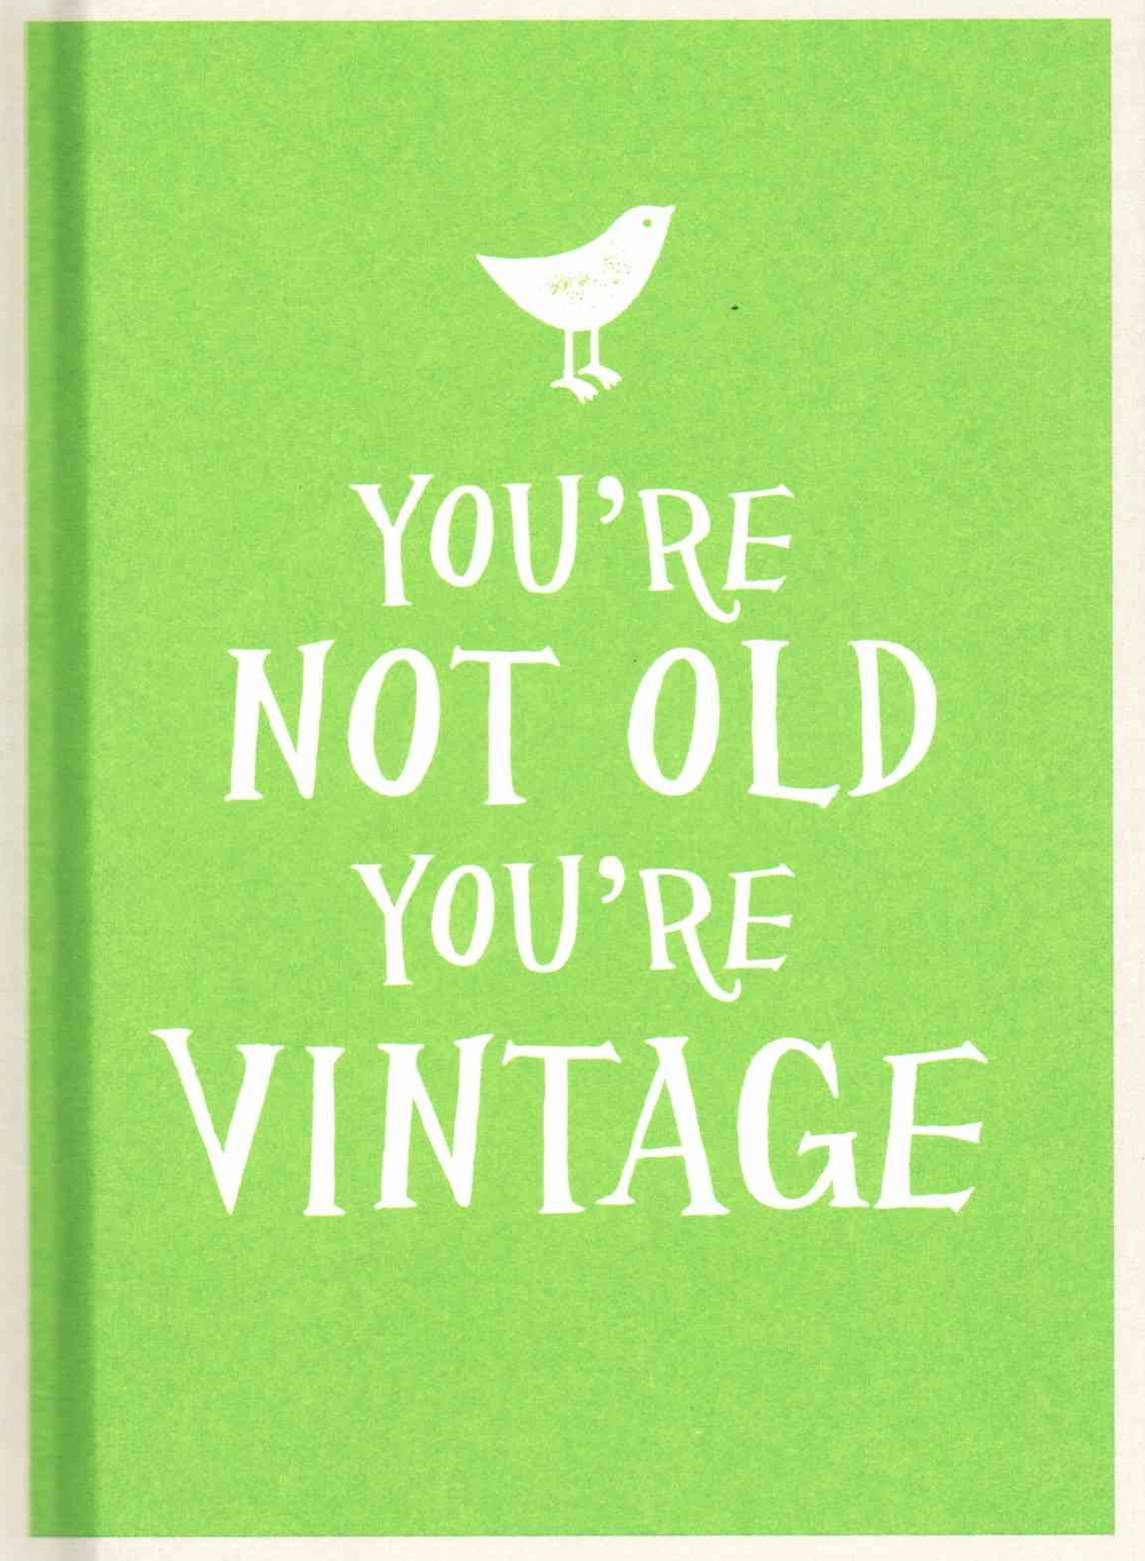 You're Not Old, You're Vintage - green